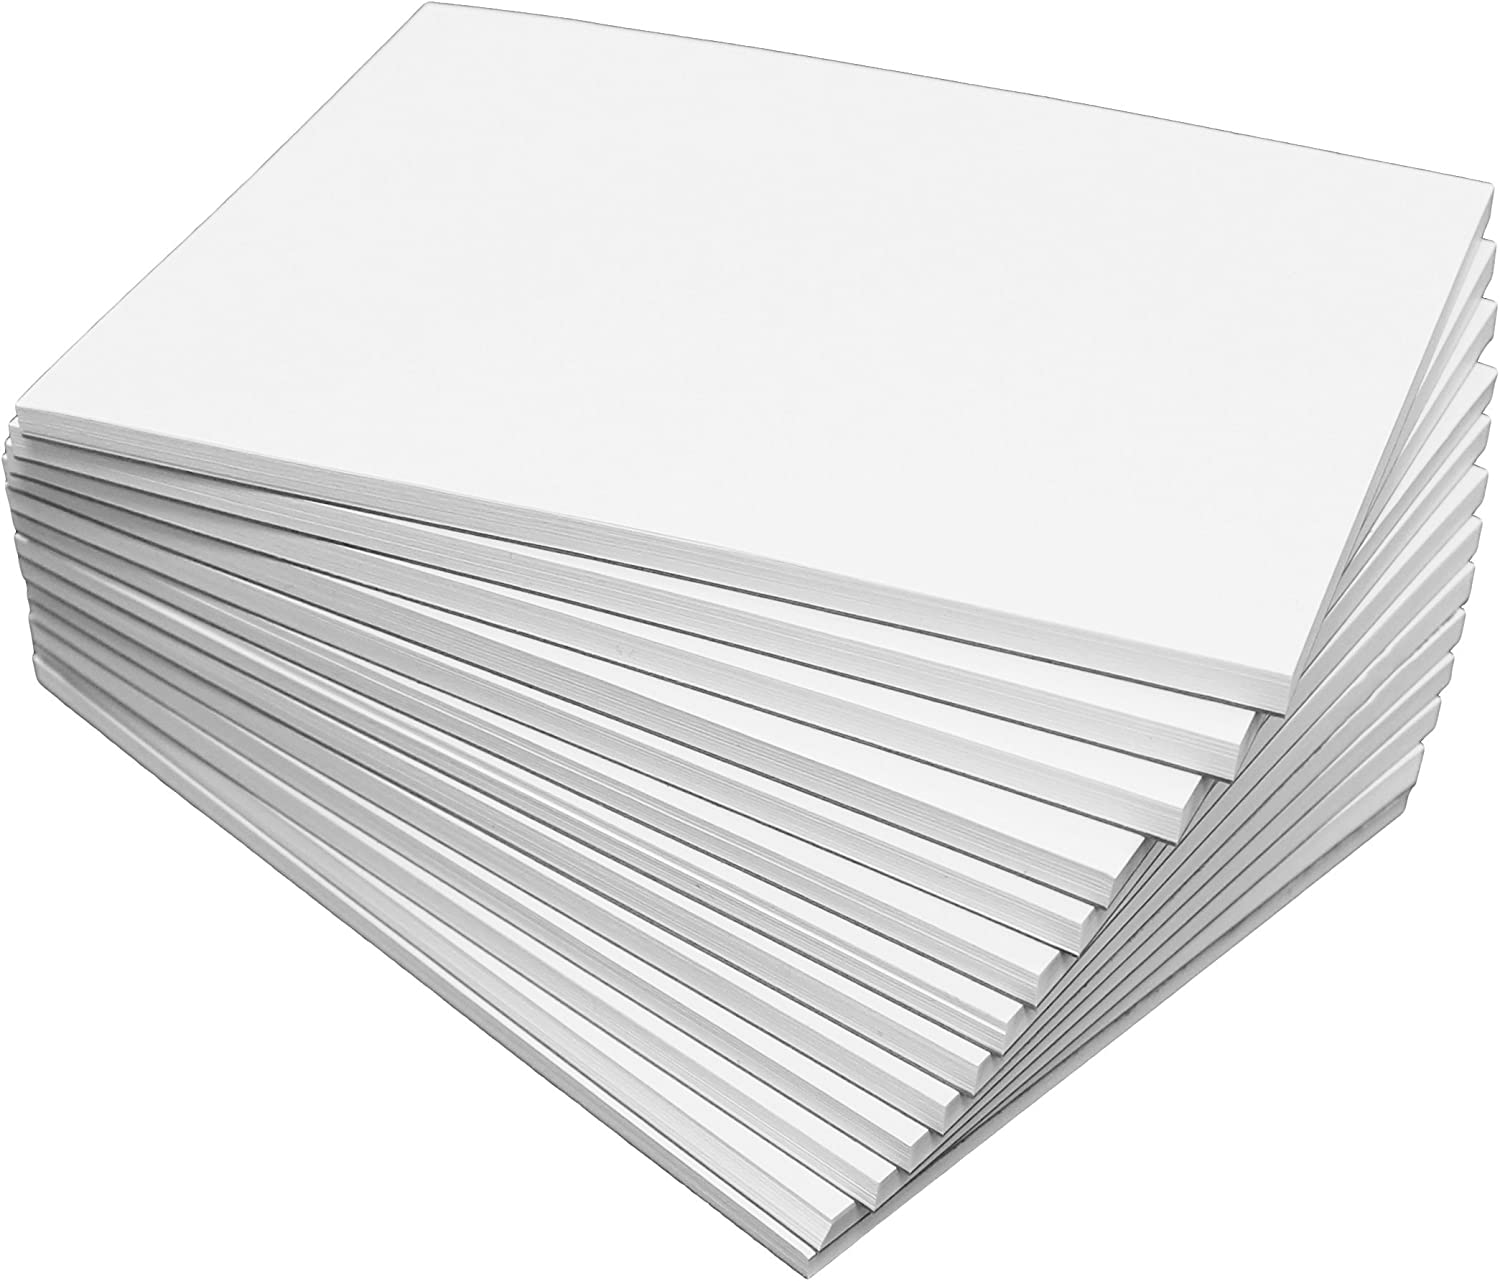 """DEBRADALE DESIGNS Blank Unruled Memo Pads - 5"""" x 7"""" Inches - Baker's Dozen (13) - Note Pads with 50 Sheets each of Bright White 20# Bond Paper - Quality Chipboard Backer - Lifetime Gluing Guarantee"""